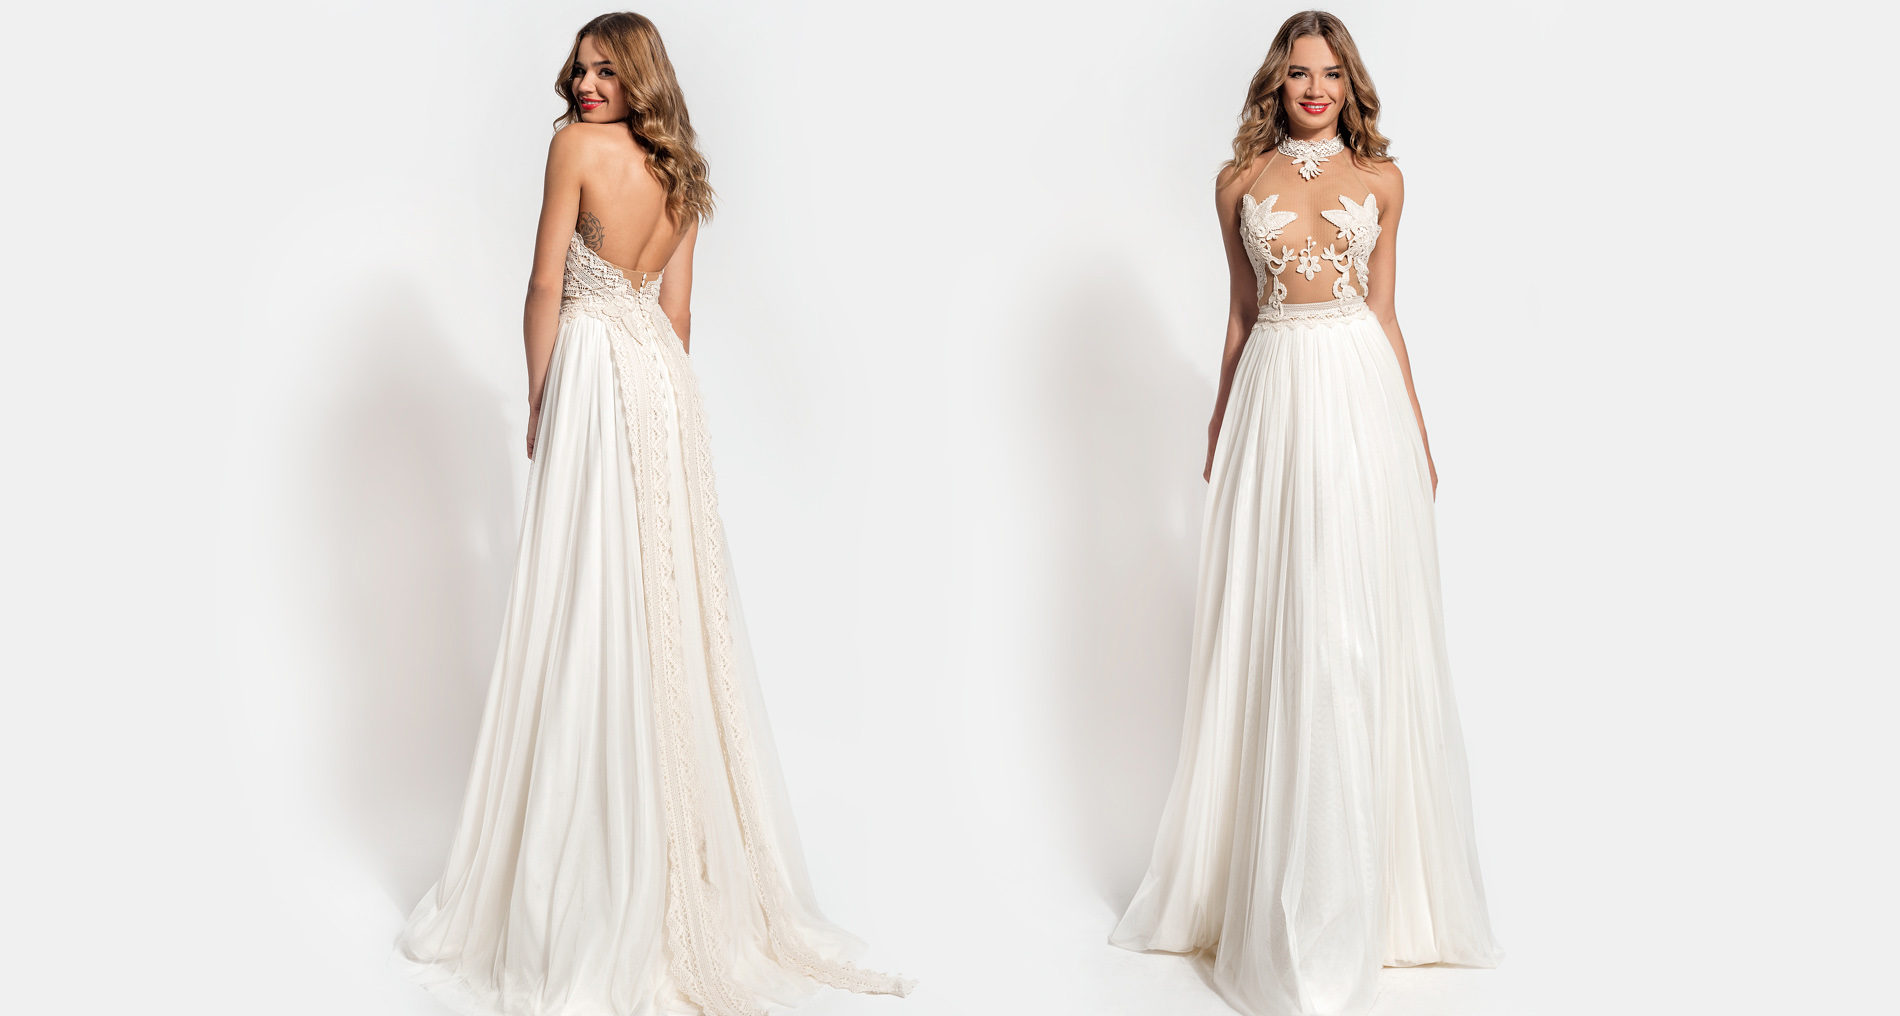 Enyo wedding dress from  Hellenic Vintage Essence Collection